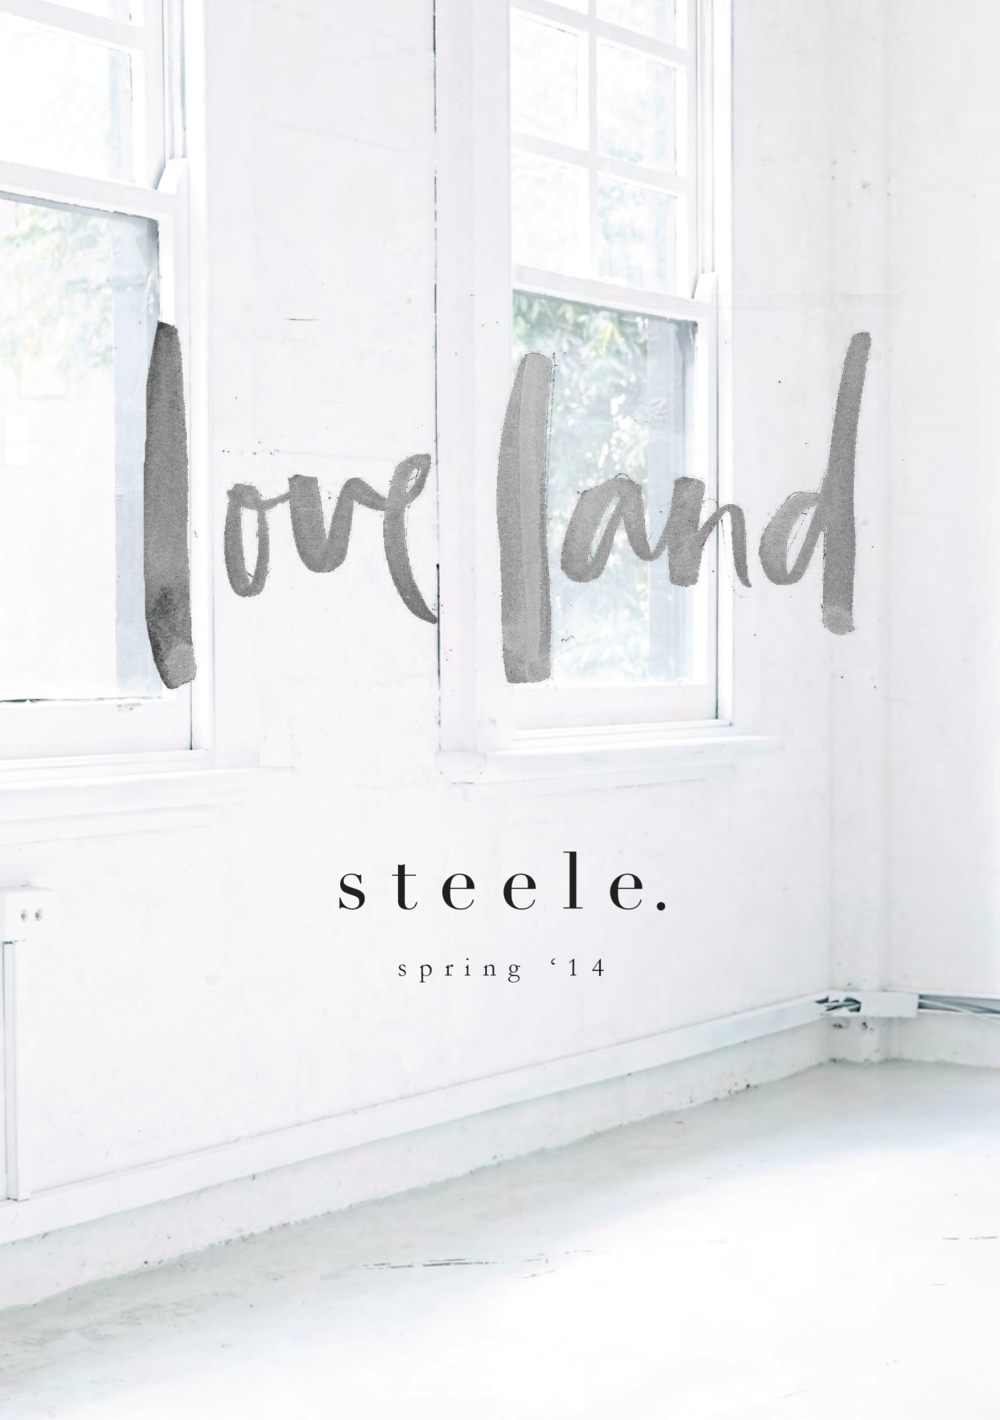 loveland-typography.png